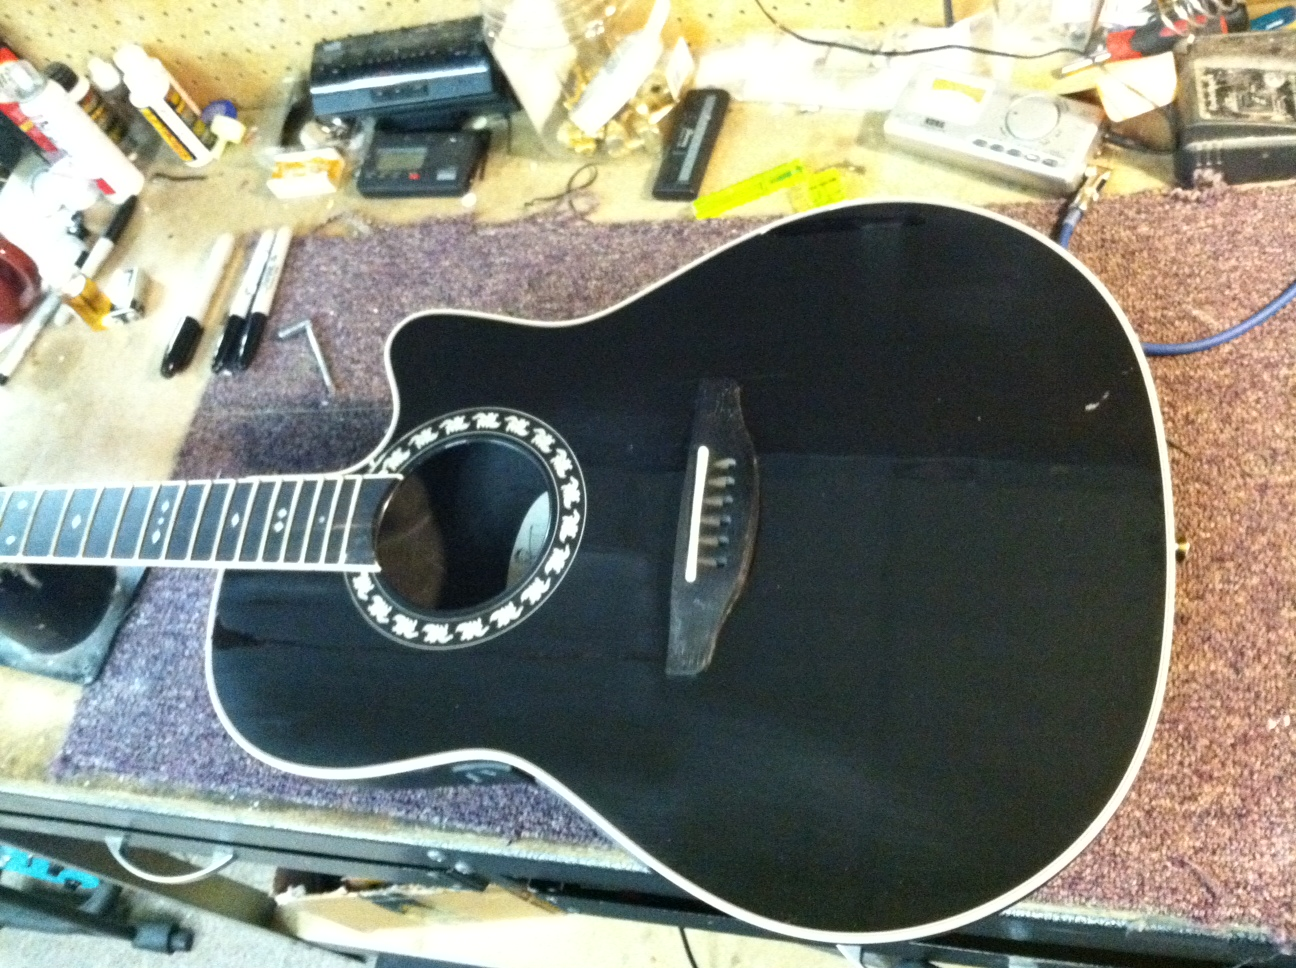 Drawn guitar refinish The of finish also glued